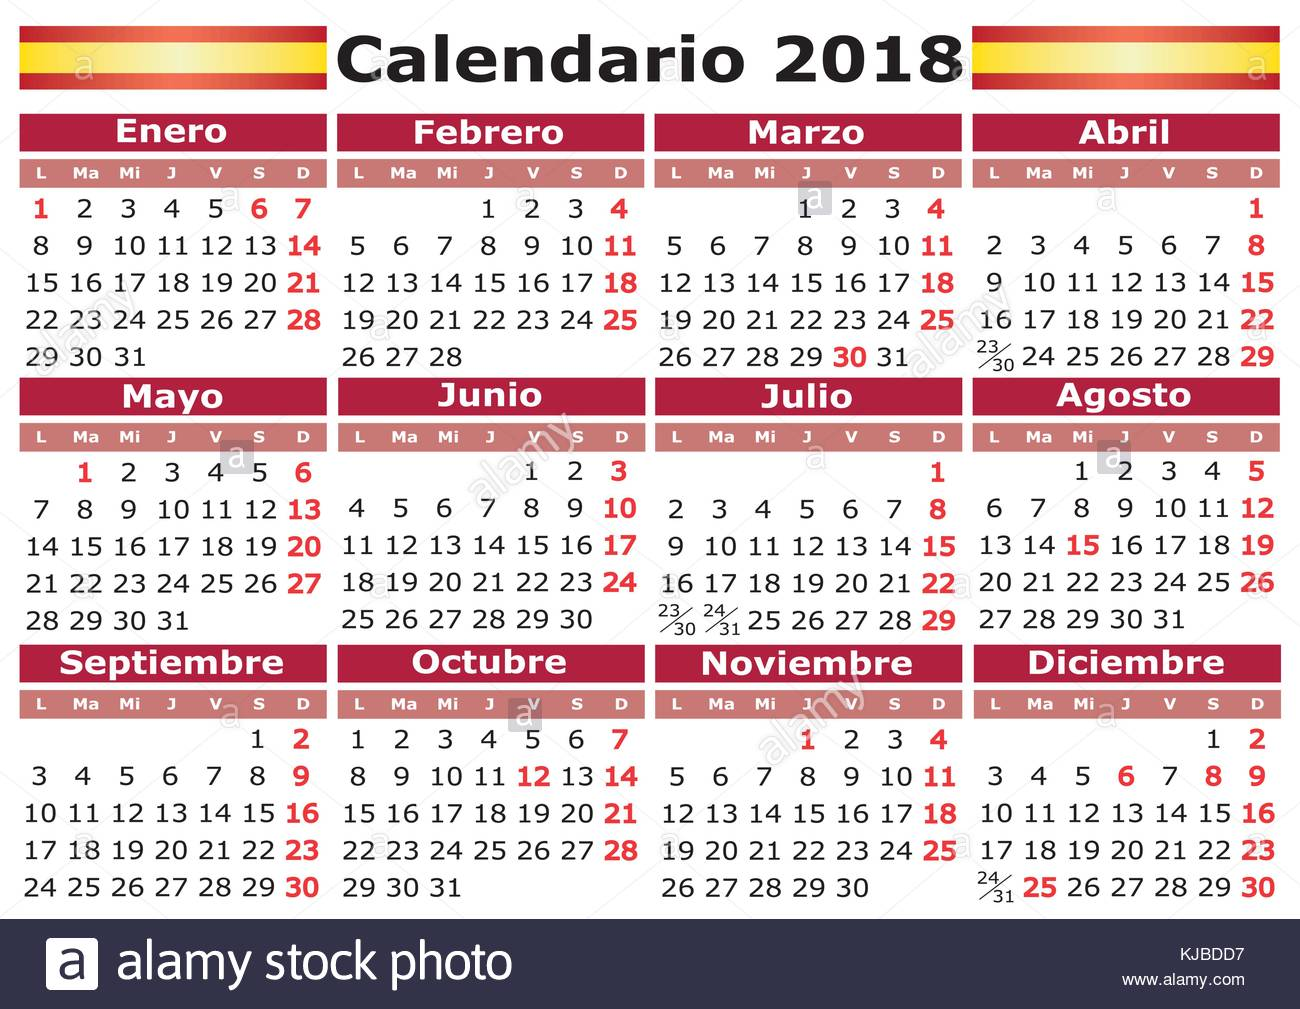 Calendario Con Week 2018.Calendario 2018 Spanish Calendar With Festive Days Pocket